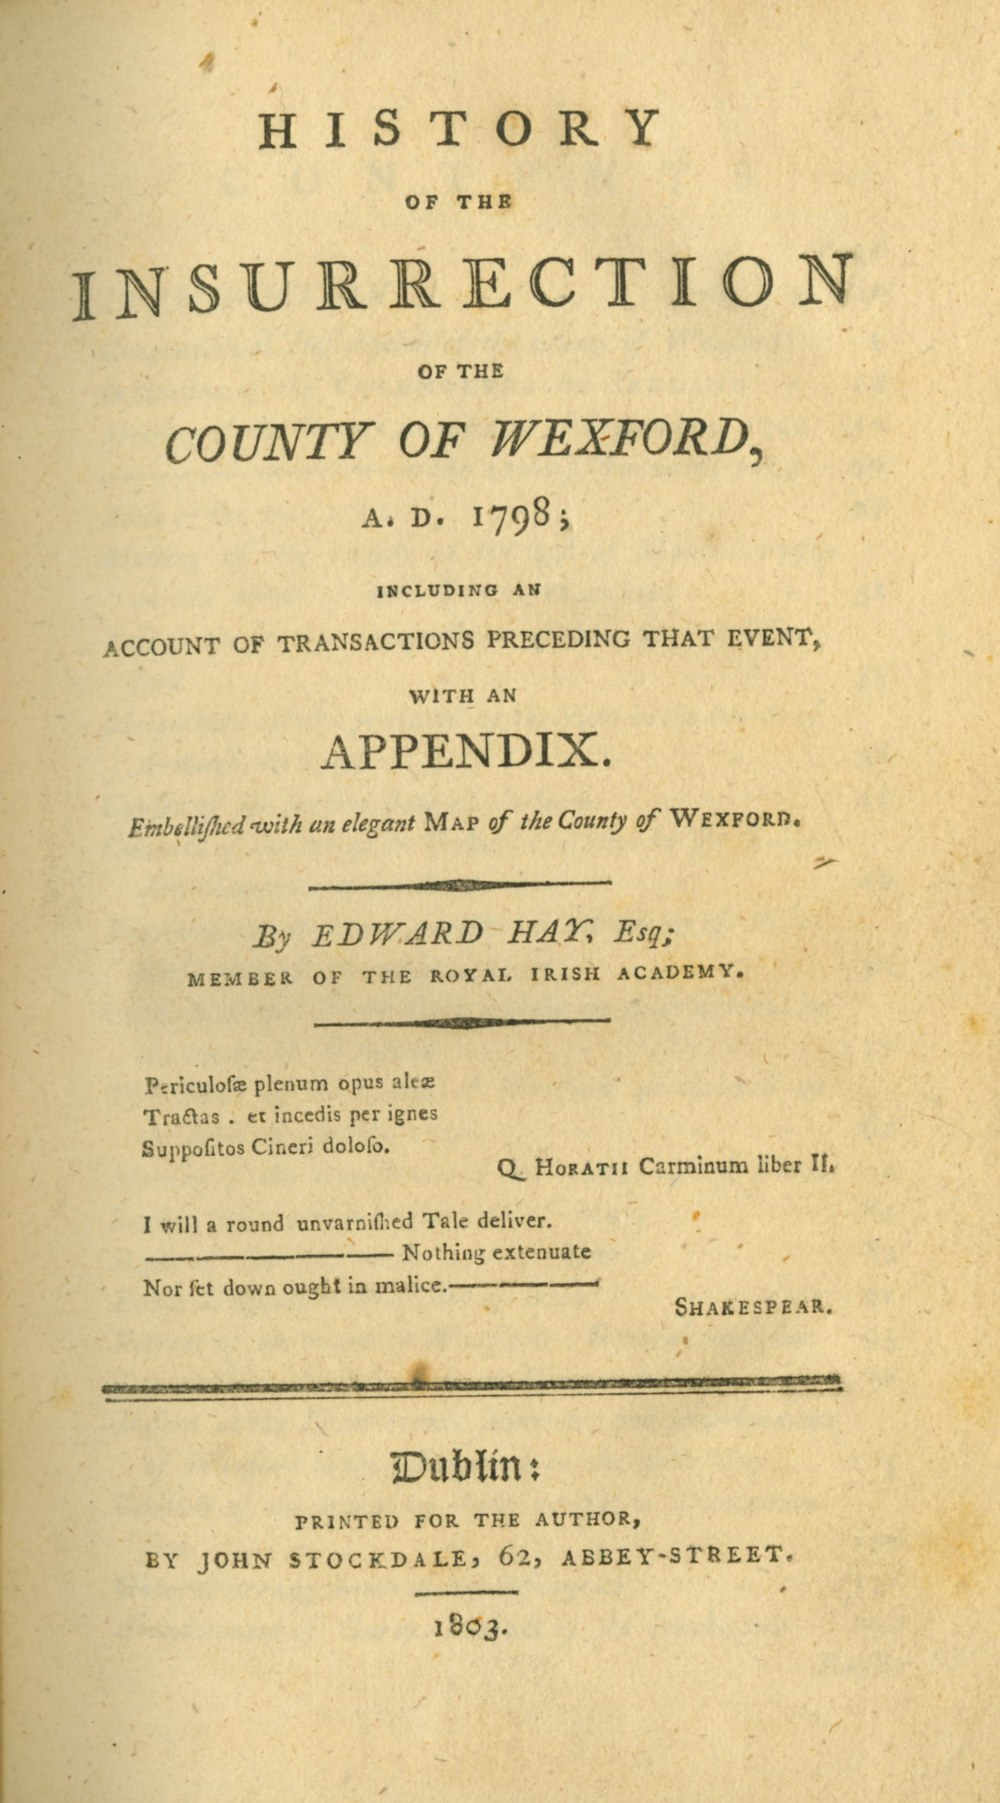 Lot 14 - 1798: Hay (Edward) History of the Insurrection of the County of Wexford A.D. 1798...., 8vo D.